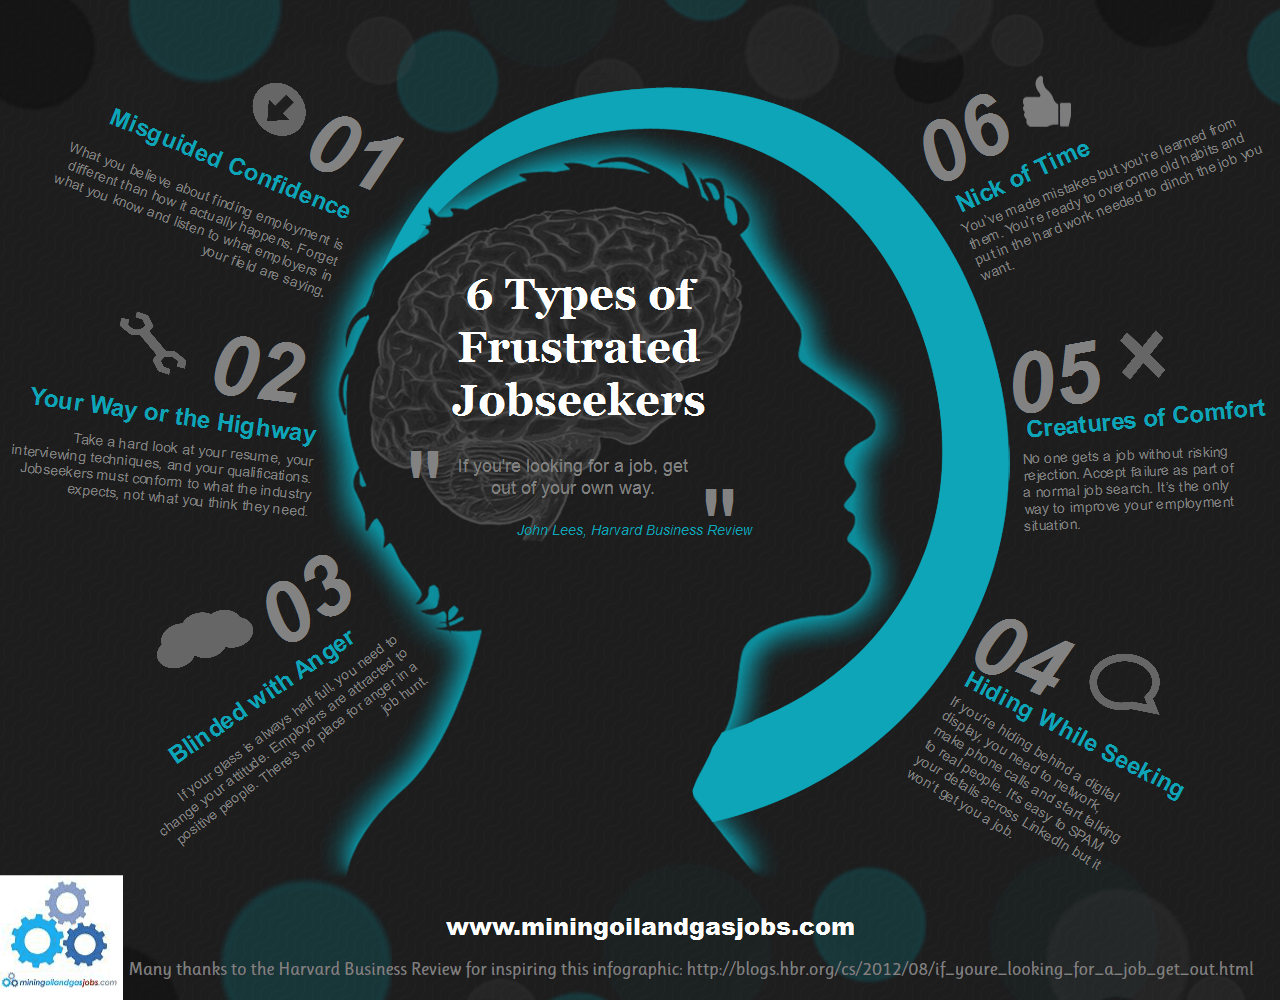 6-types-of-frustrated-jobseekers_504864d040f9d